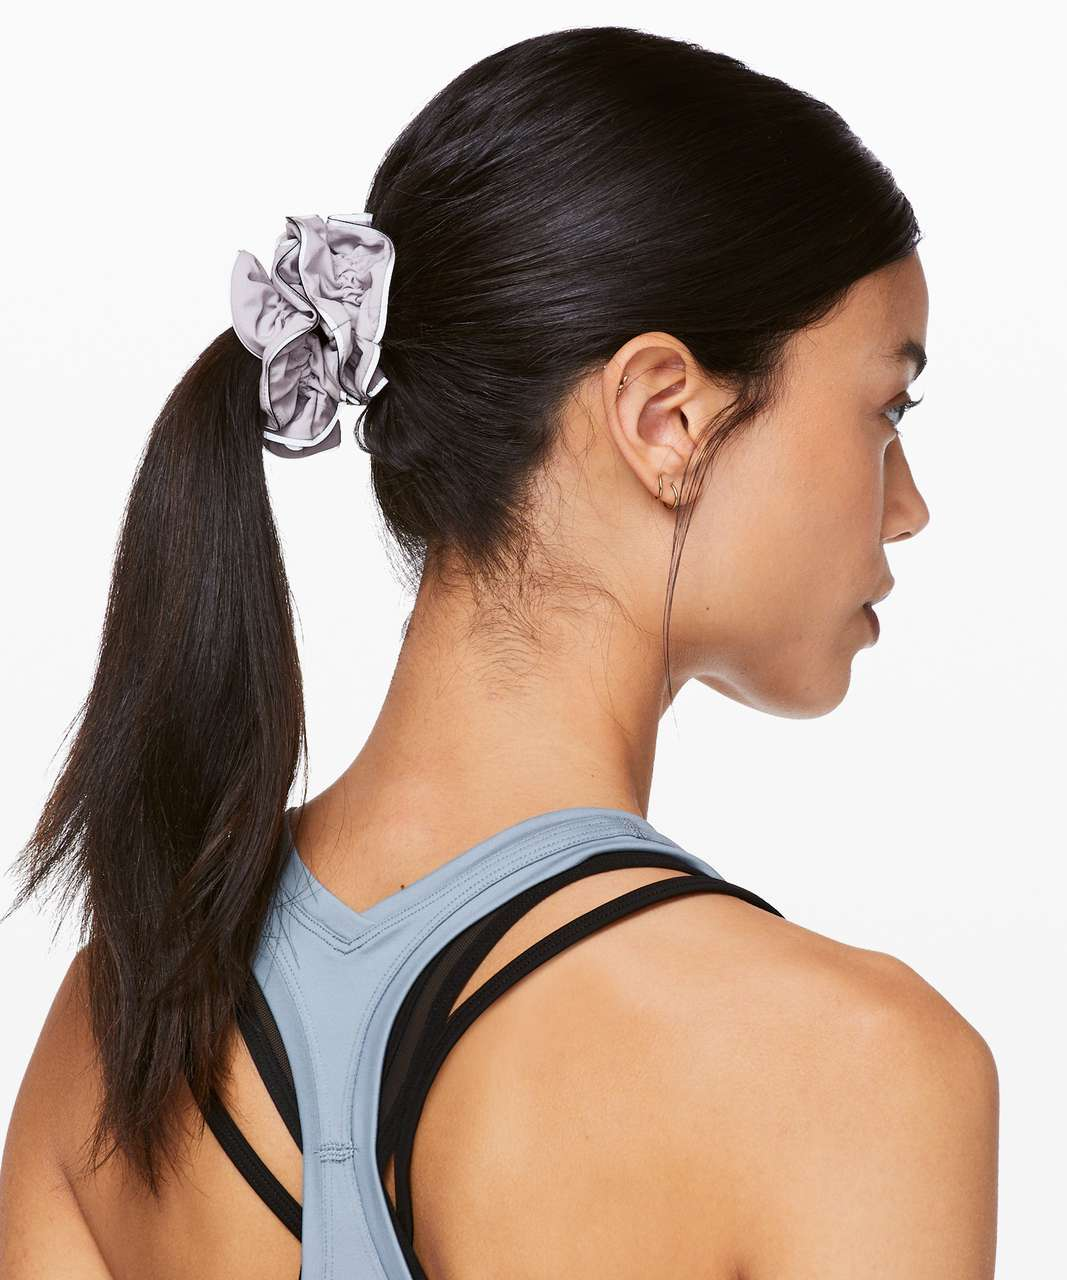 Lululemon Light Locks Scrunchie - Silver Lilac